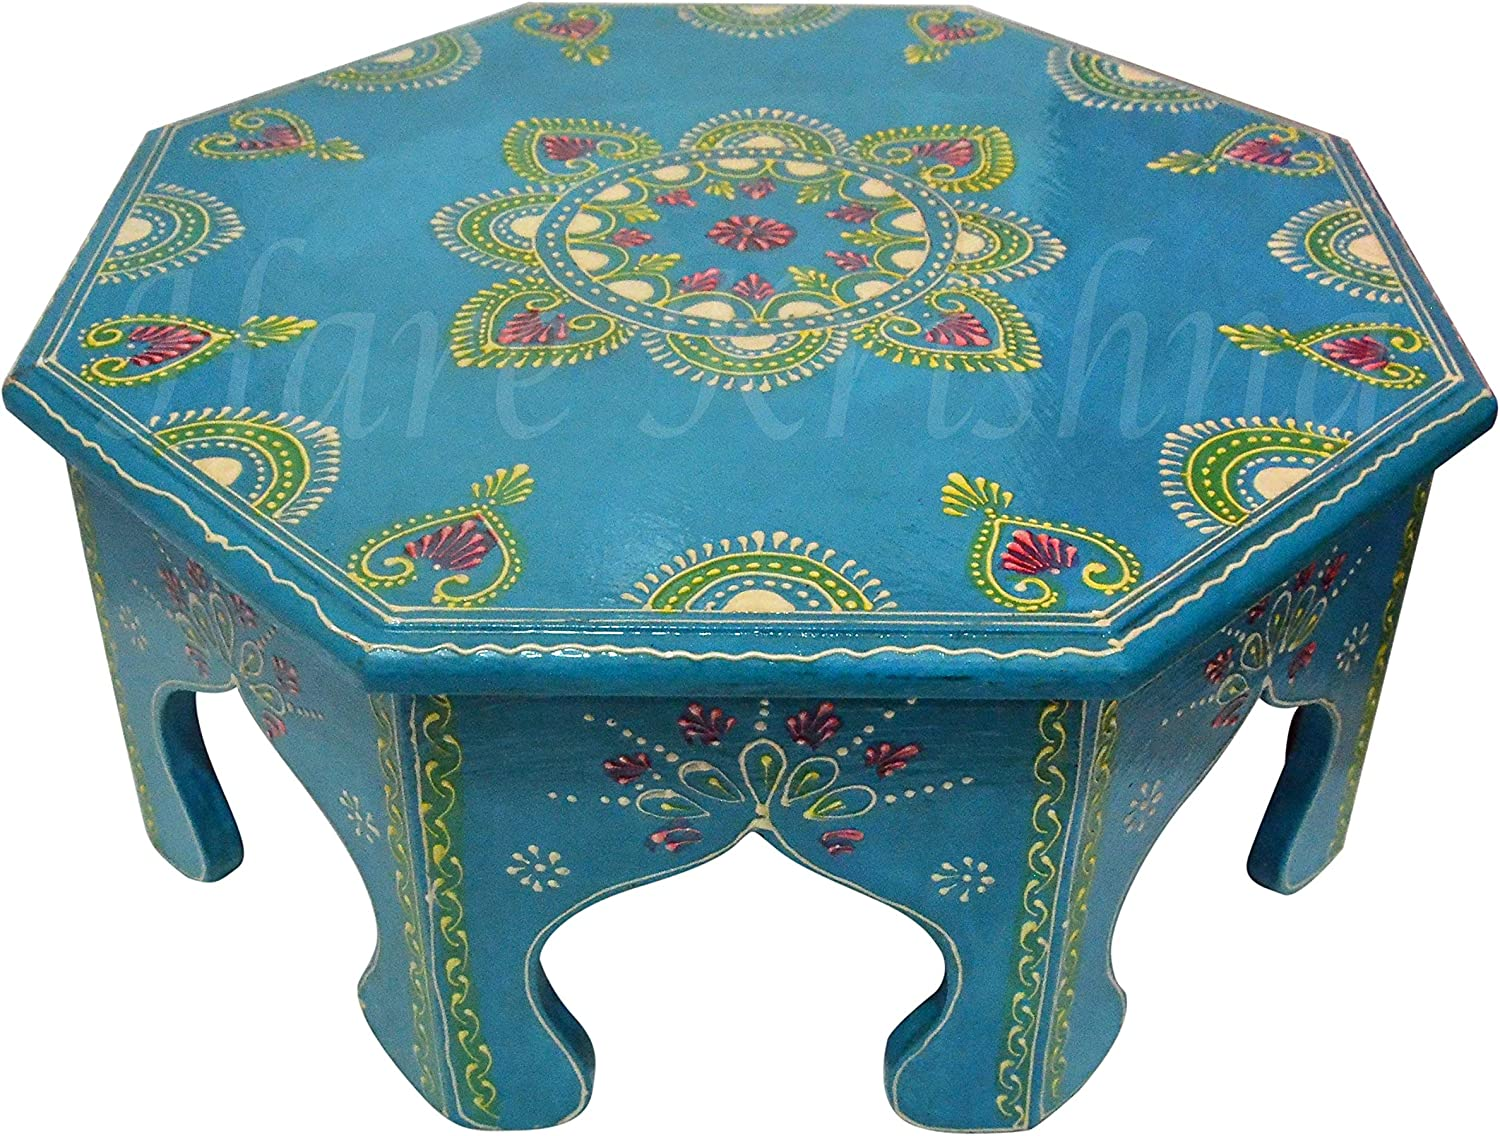 Indian Wooden Side Table Hallway Corner Furniture Hand Painted Chowki Bajot (Turquoise) 14 x 14 x 6 Inches